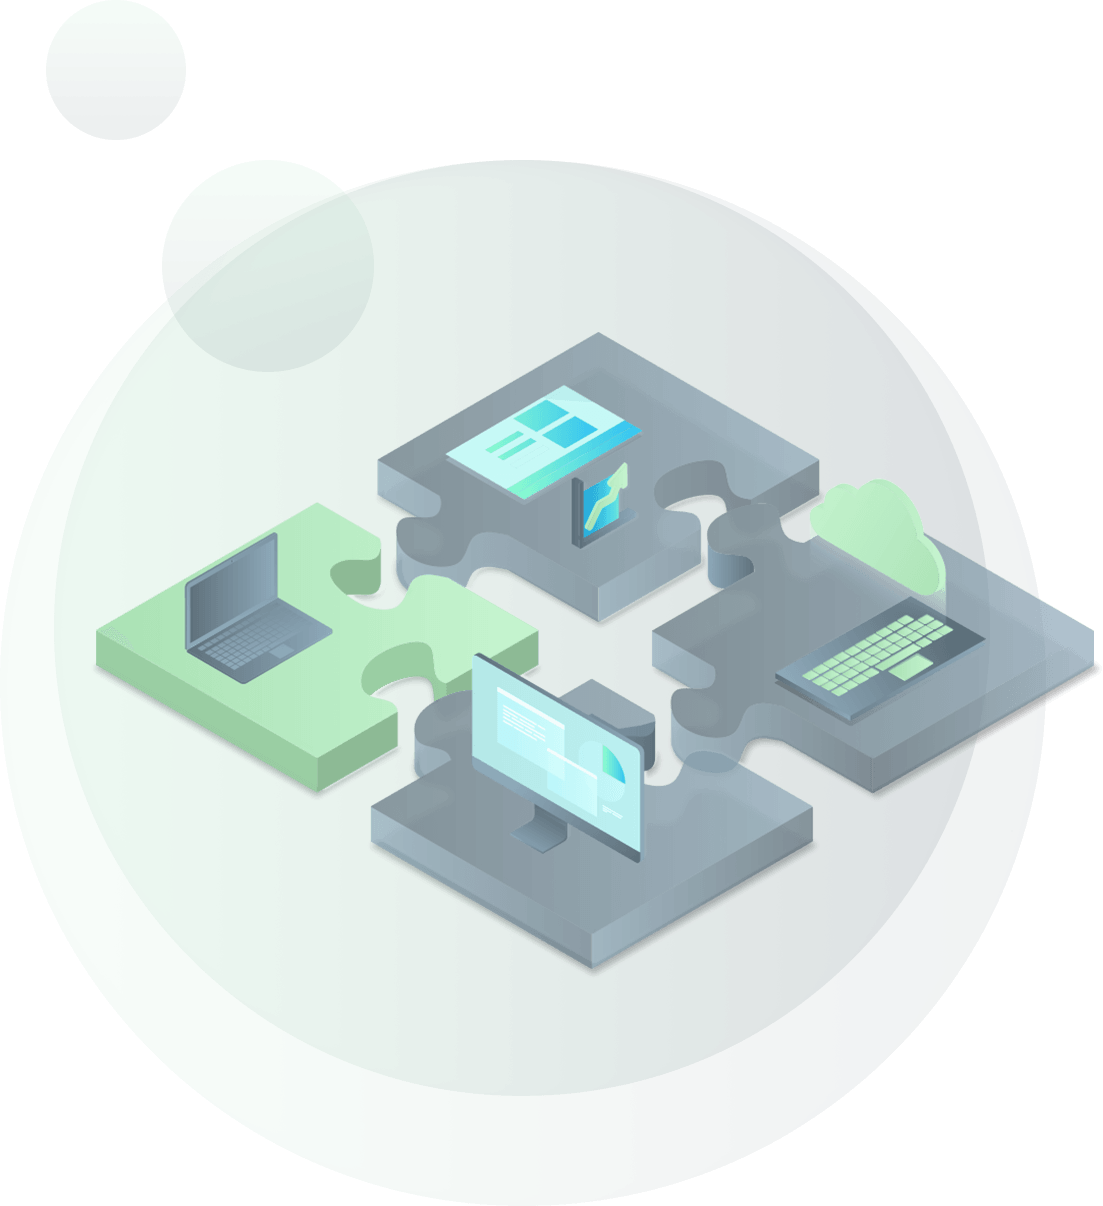 illustration of technology puzzle pieces